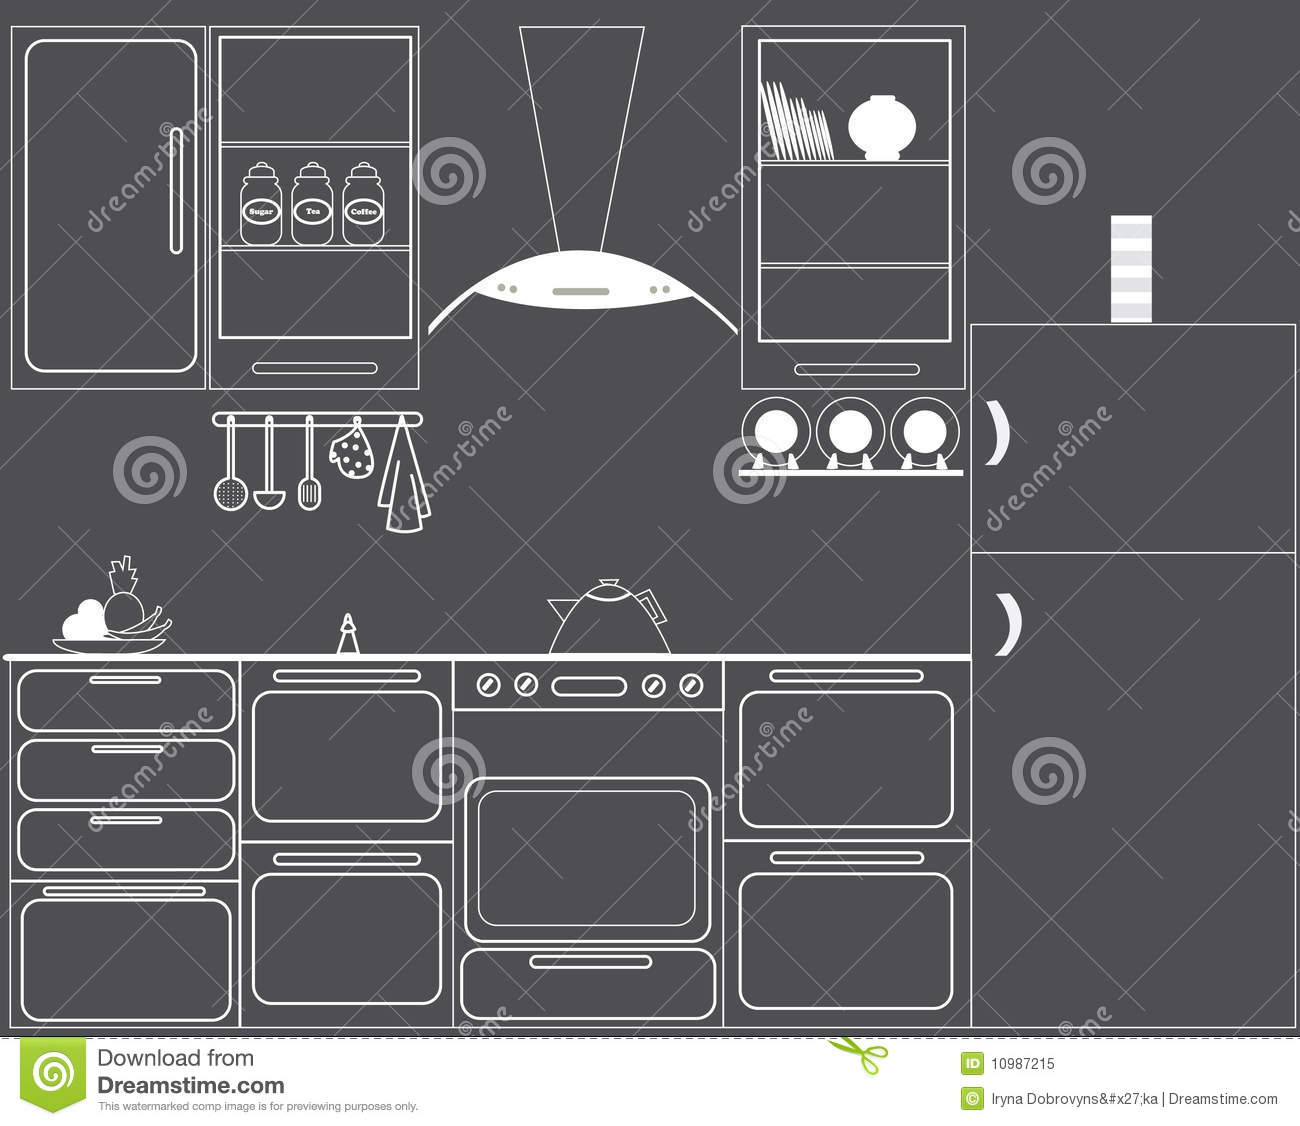 The Gas Hob Kitchen Stock Vector Illustration Of Fruit 10987215 Cooktop Schematic